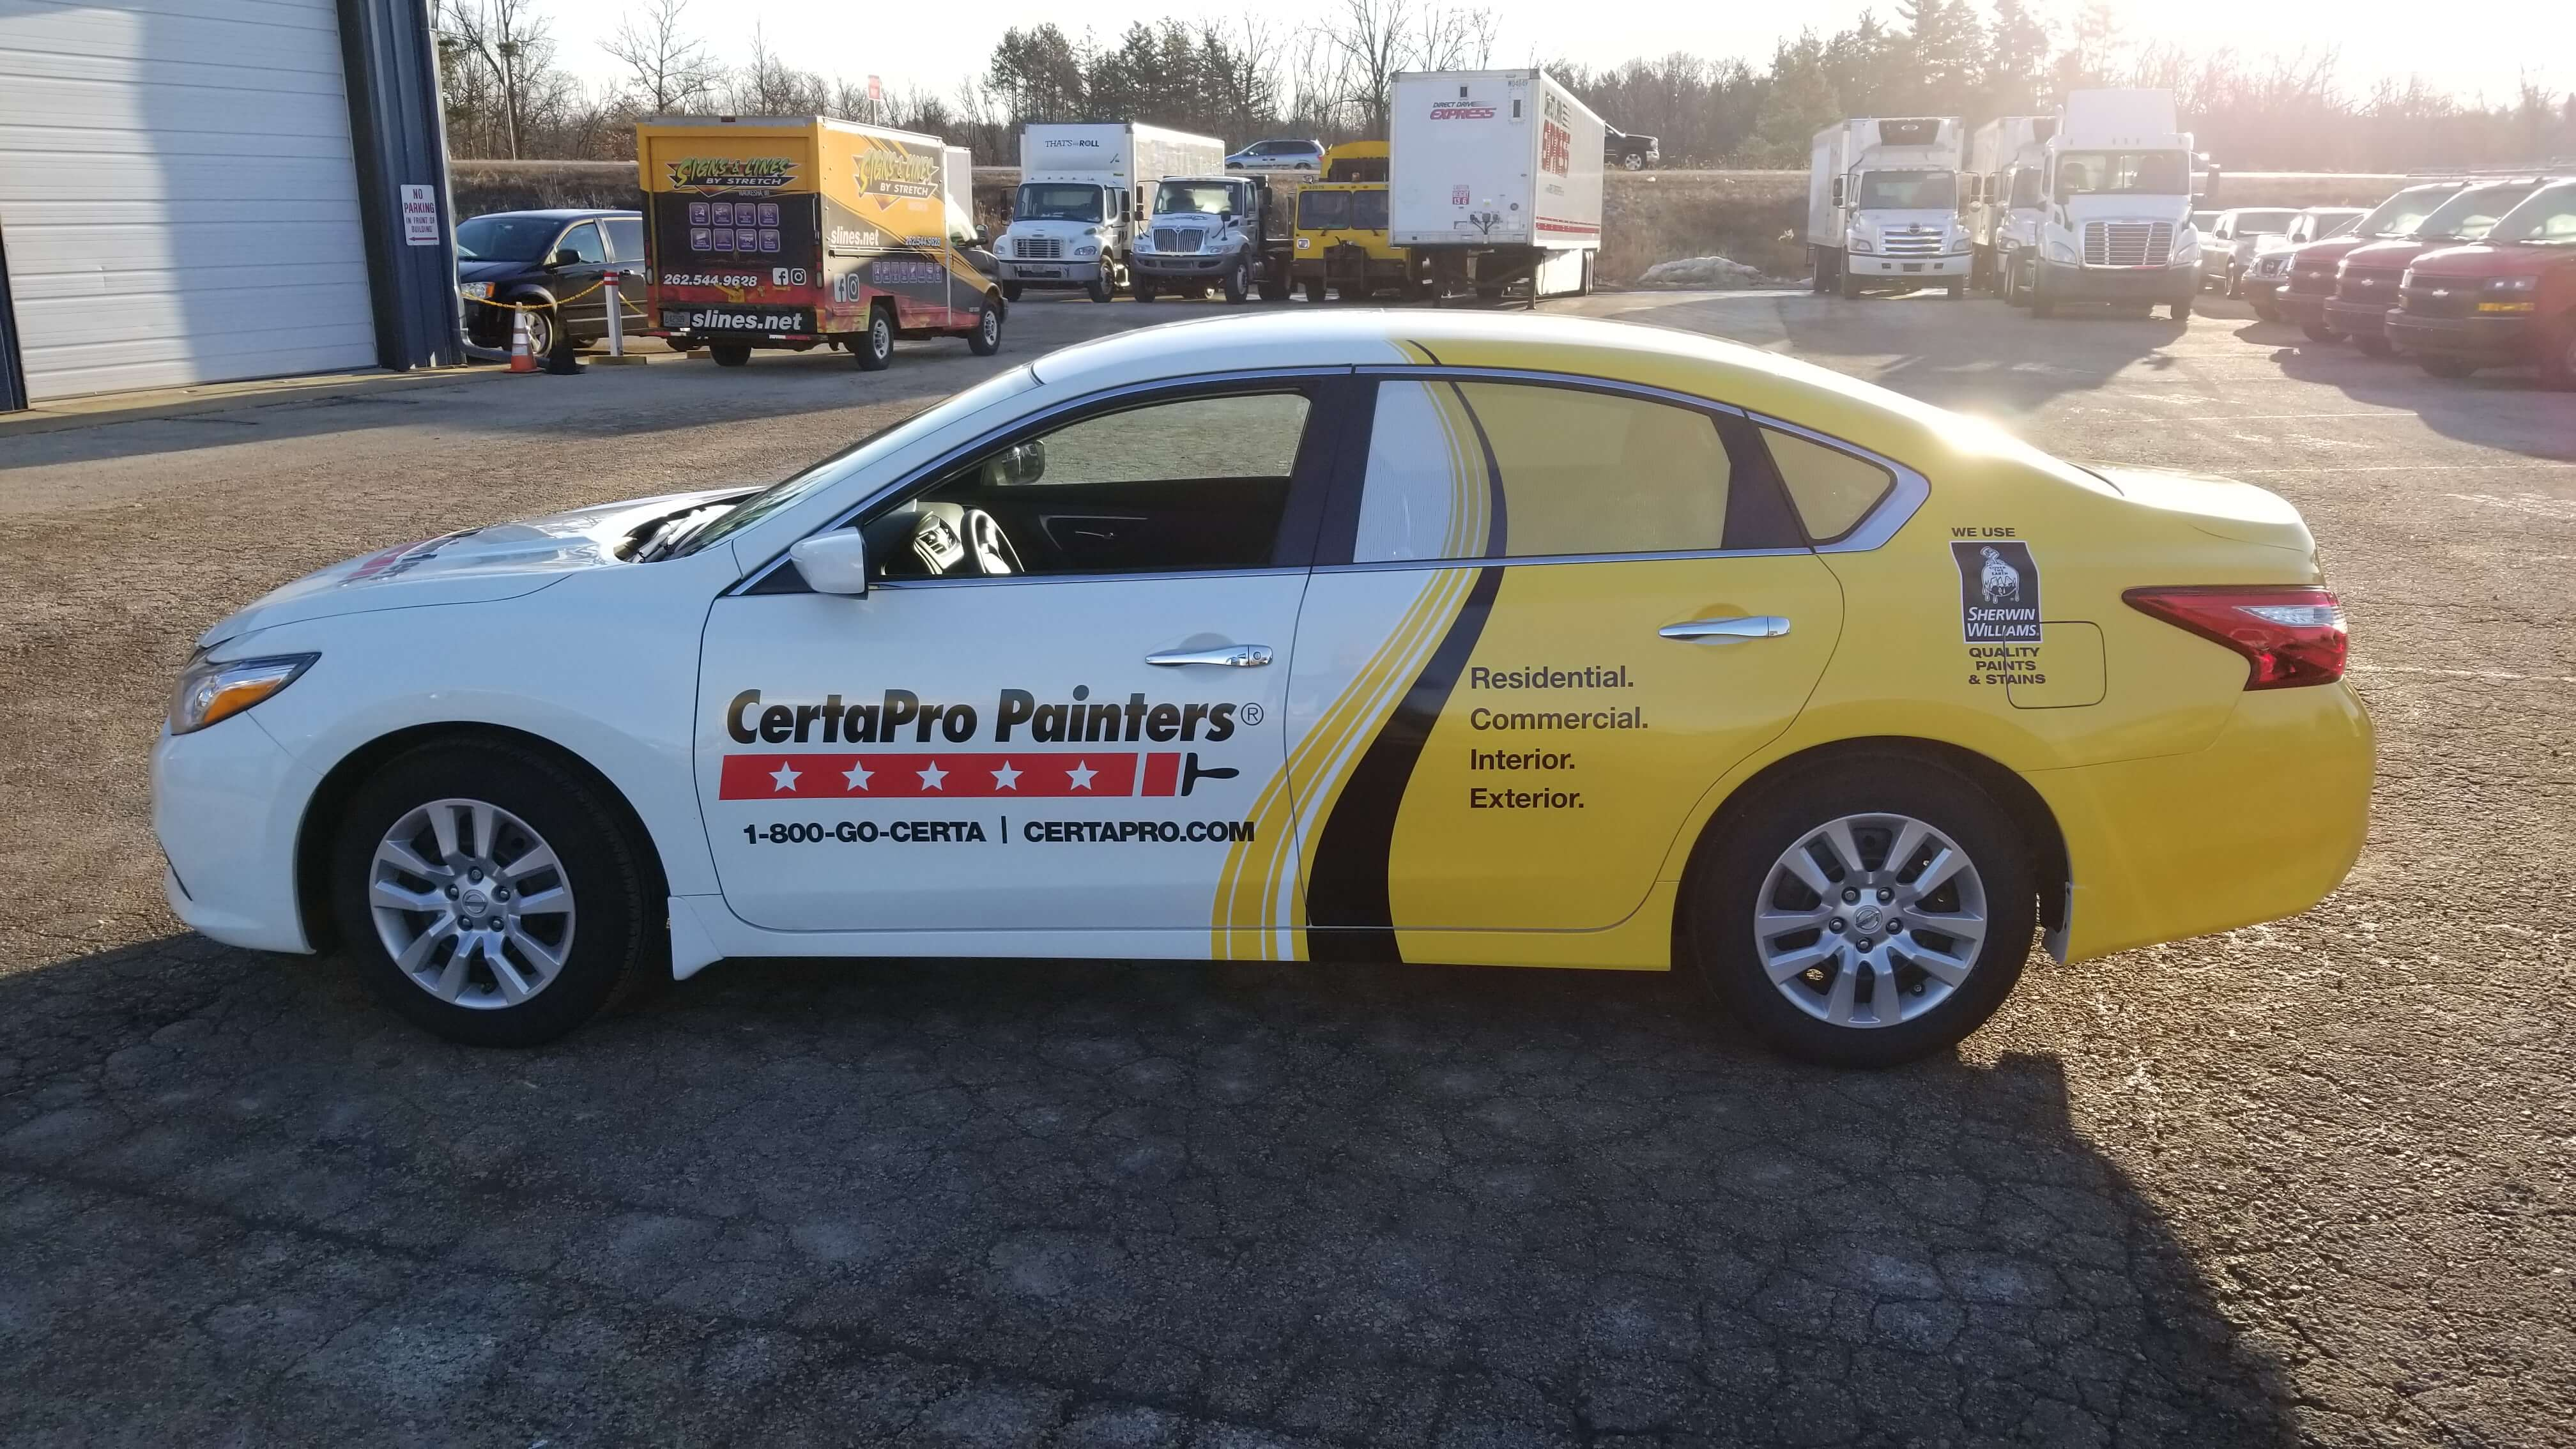 Certapro Painters Wisconsin Vehicle Wraps